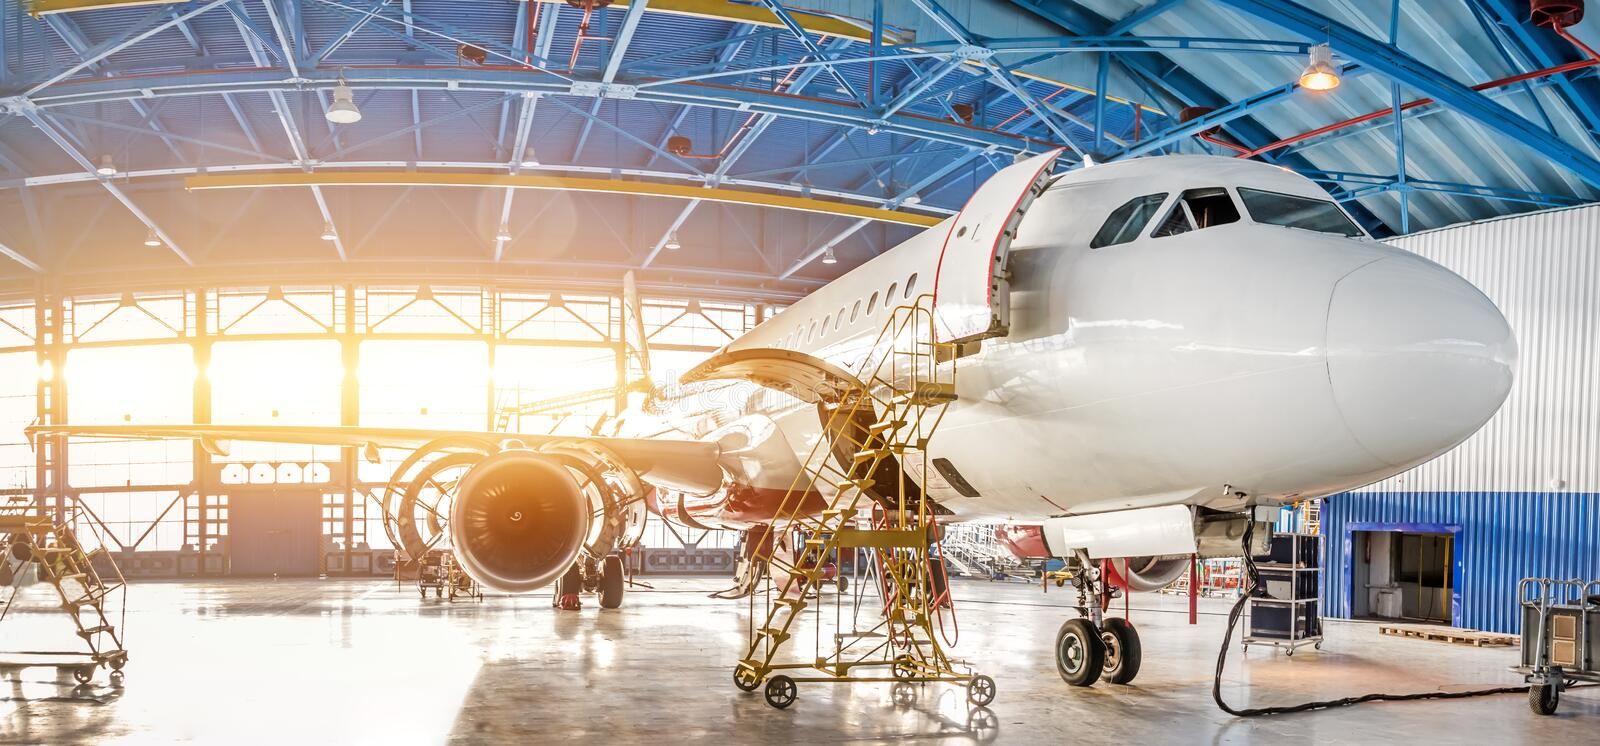 Maintenance and repair of aircraft in the aviation hangar of the airport, view of a wide panorama stock image